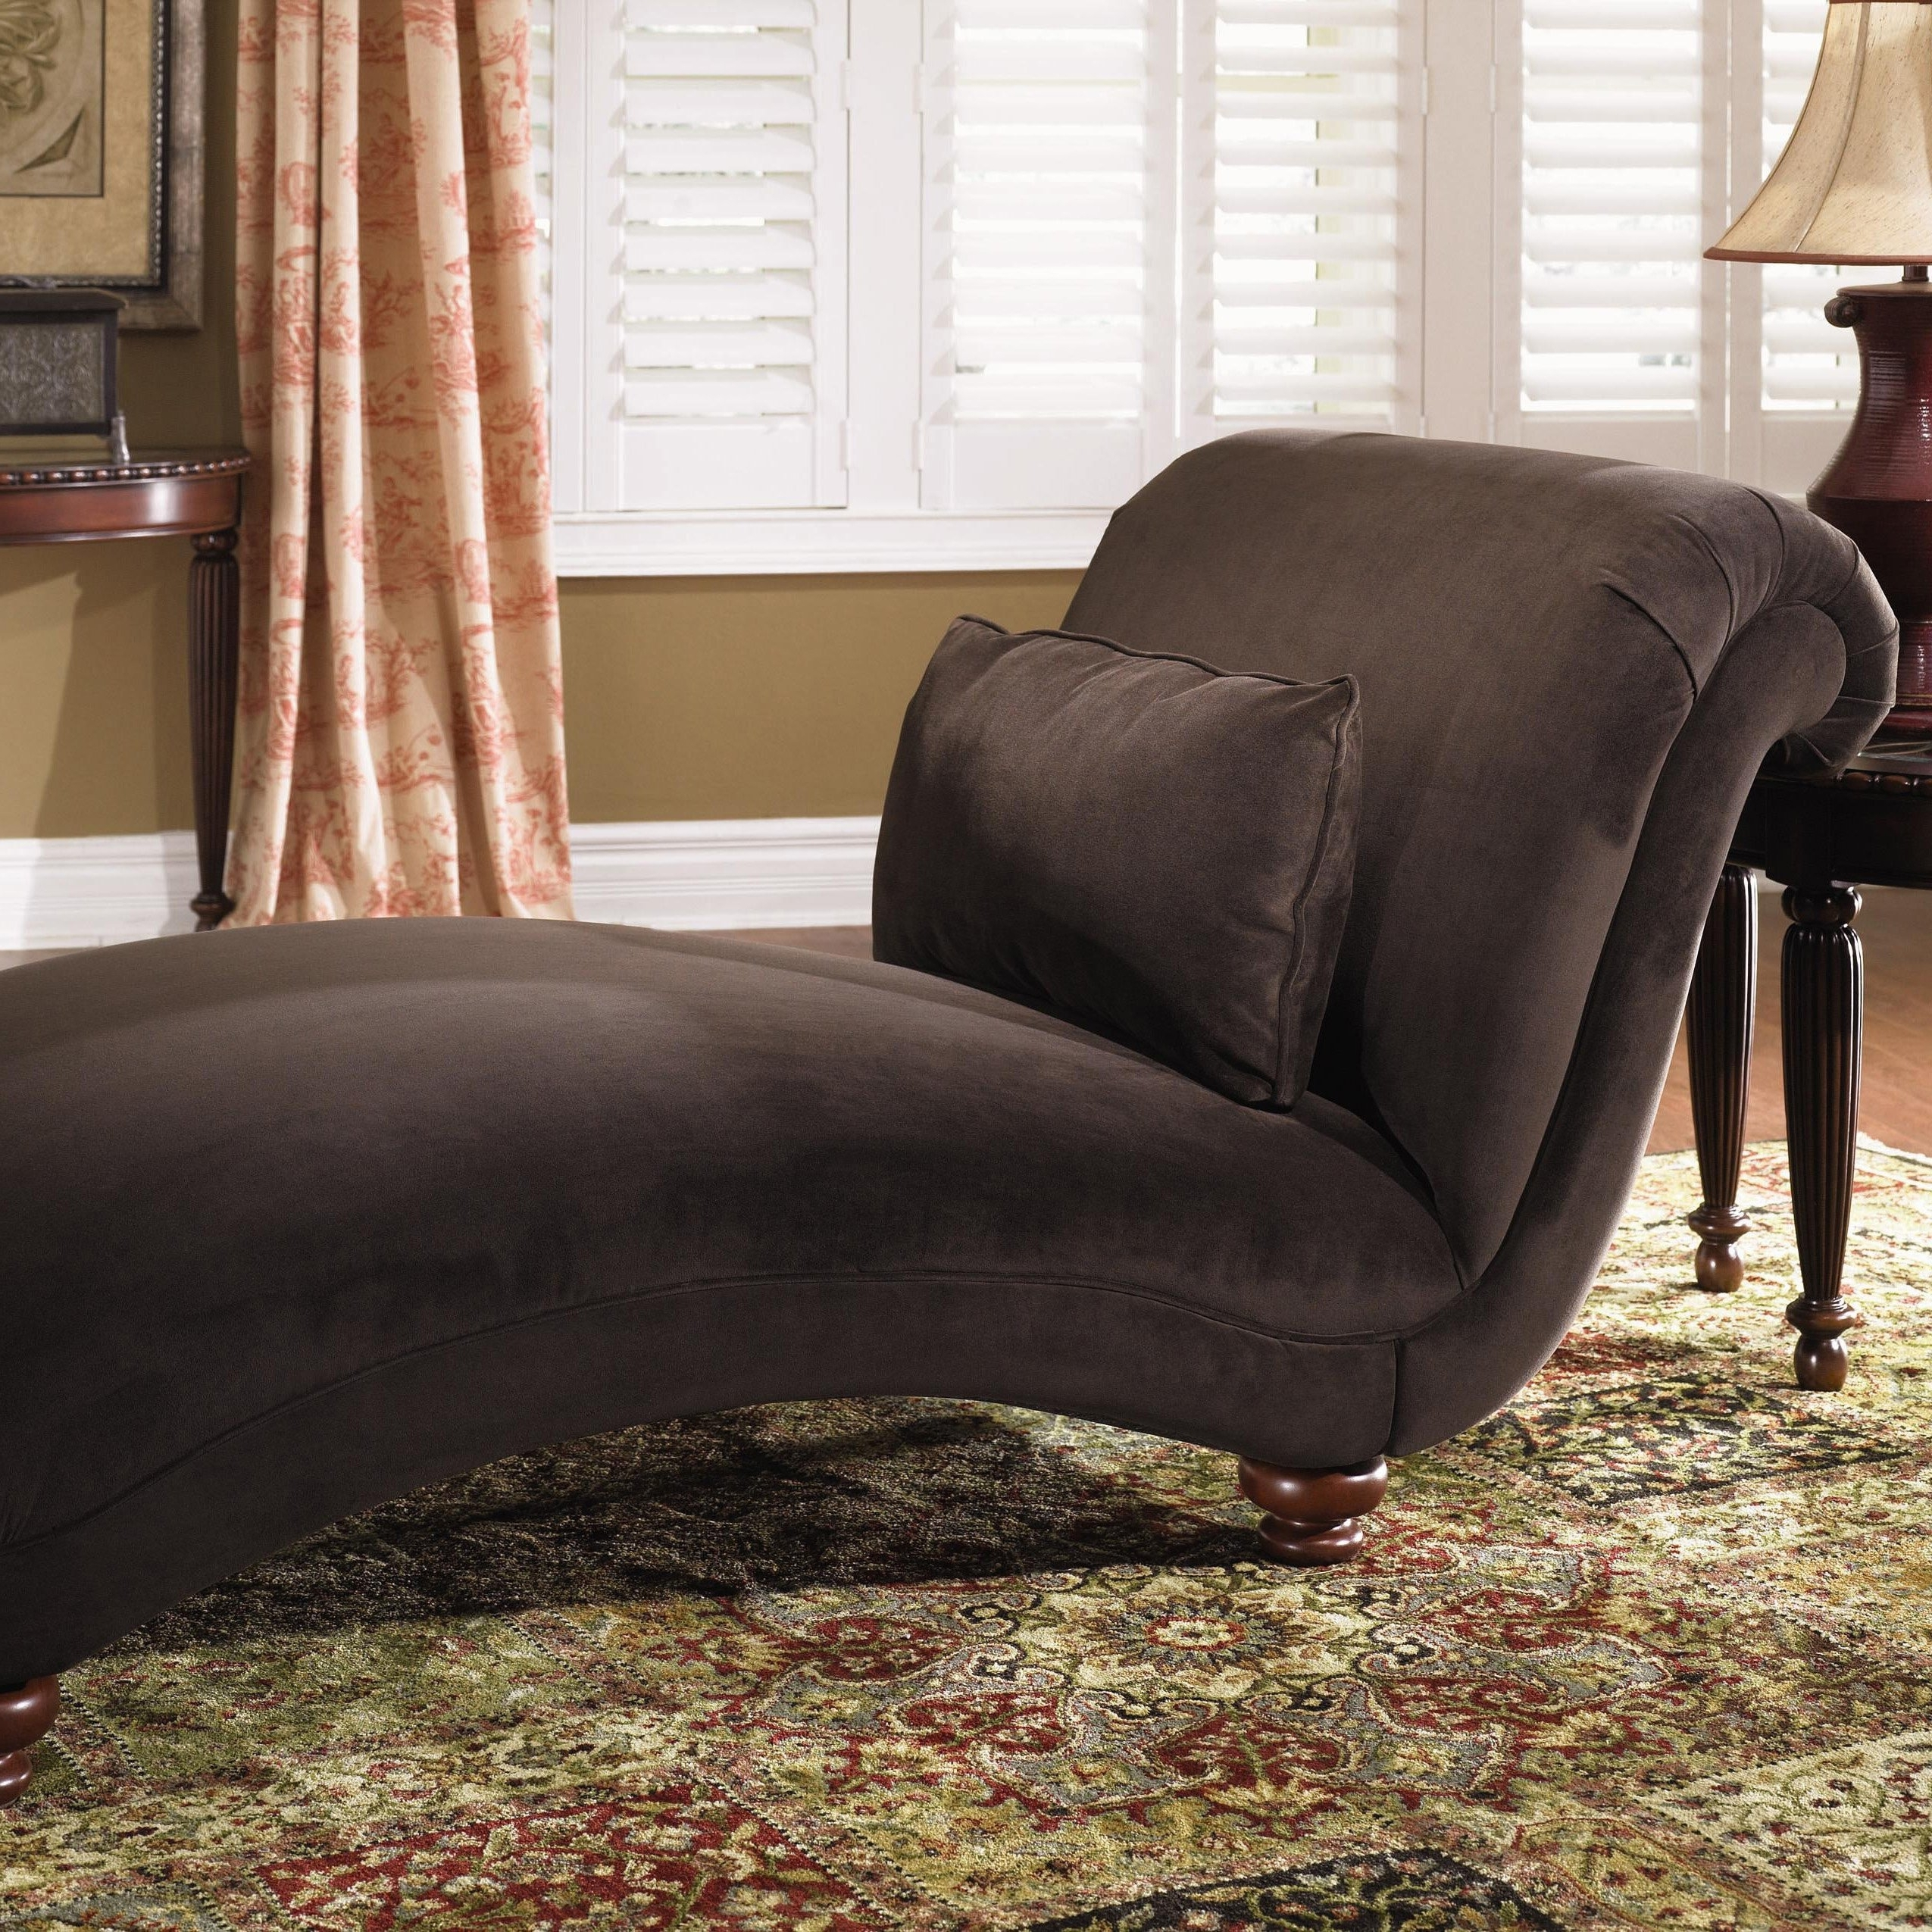 Famous Indoor Chaise Lounge Chairs – Home Designs Ideas Online Regarding 2 Person Indoor Chaise Lounges (View 7 of 15)